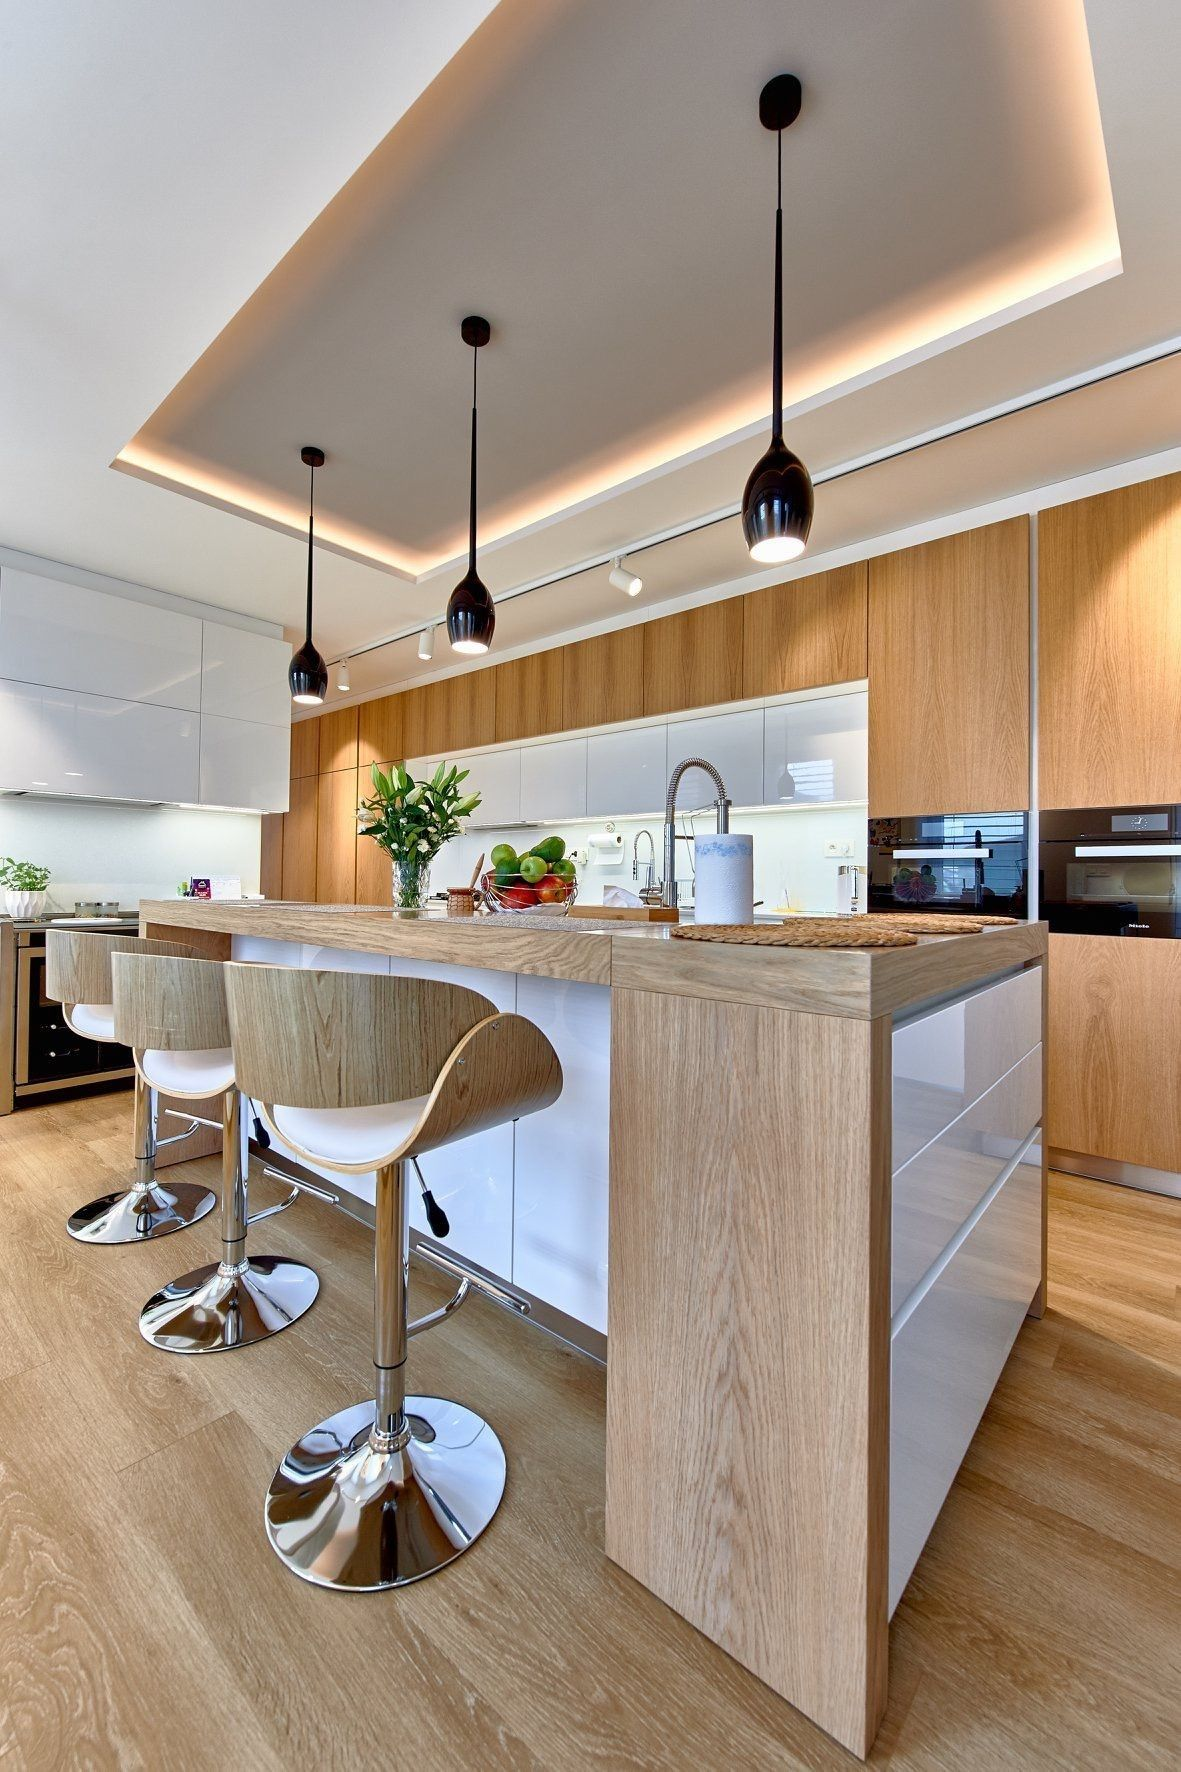 Home Design Kitchen Interiordesign Modern Contemporary Kitchen Design Kitchen Room Design Contemporary Kitchen